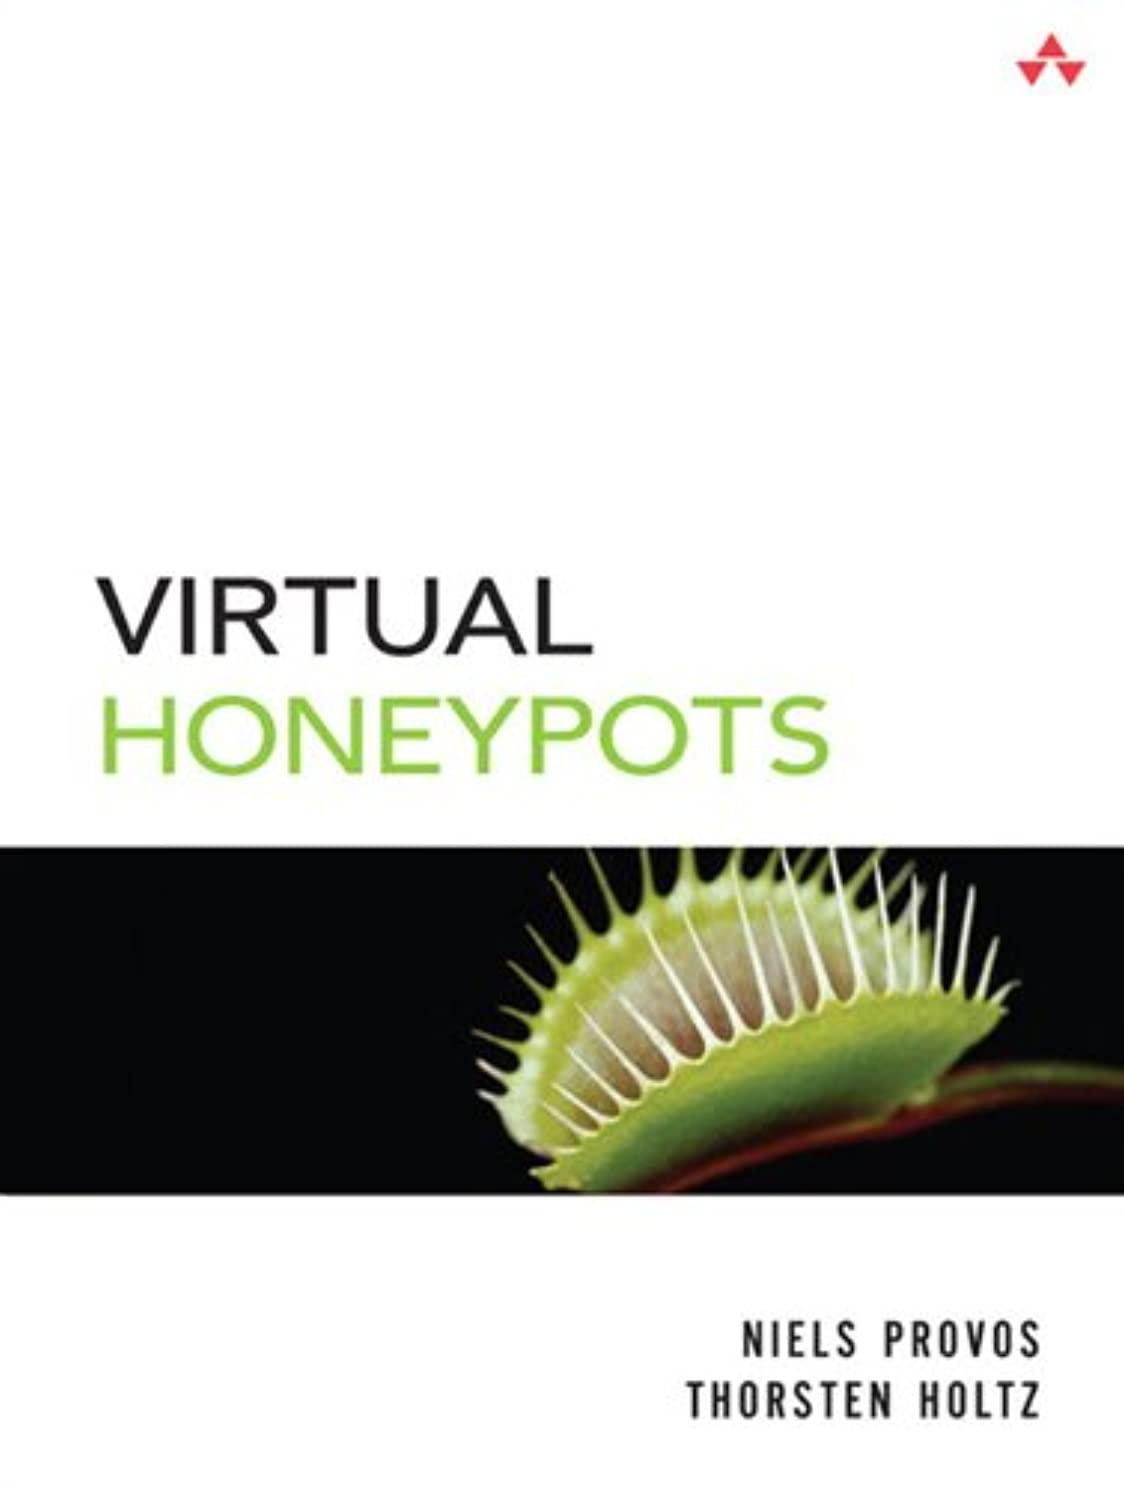 盆地租界征服するVirtual Honeypots: From Botnet Tracking to Intrusion Detection (English Edition)